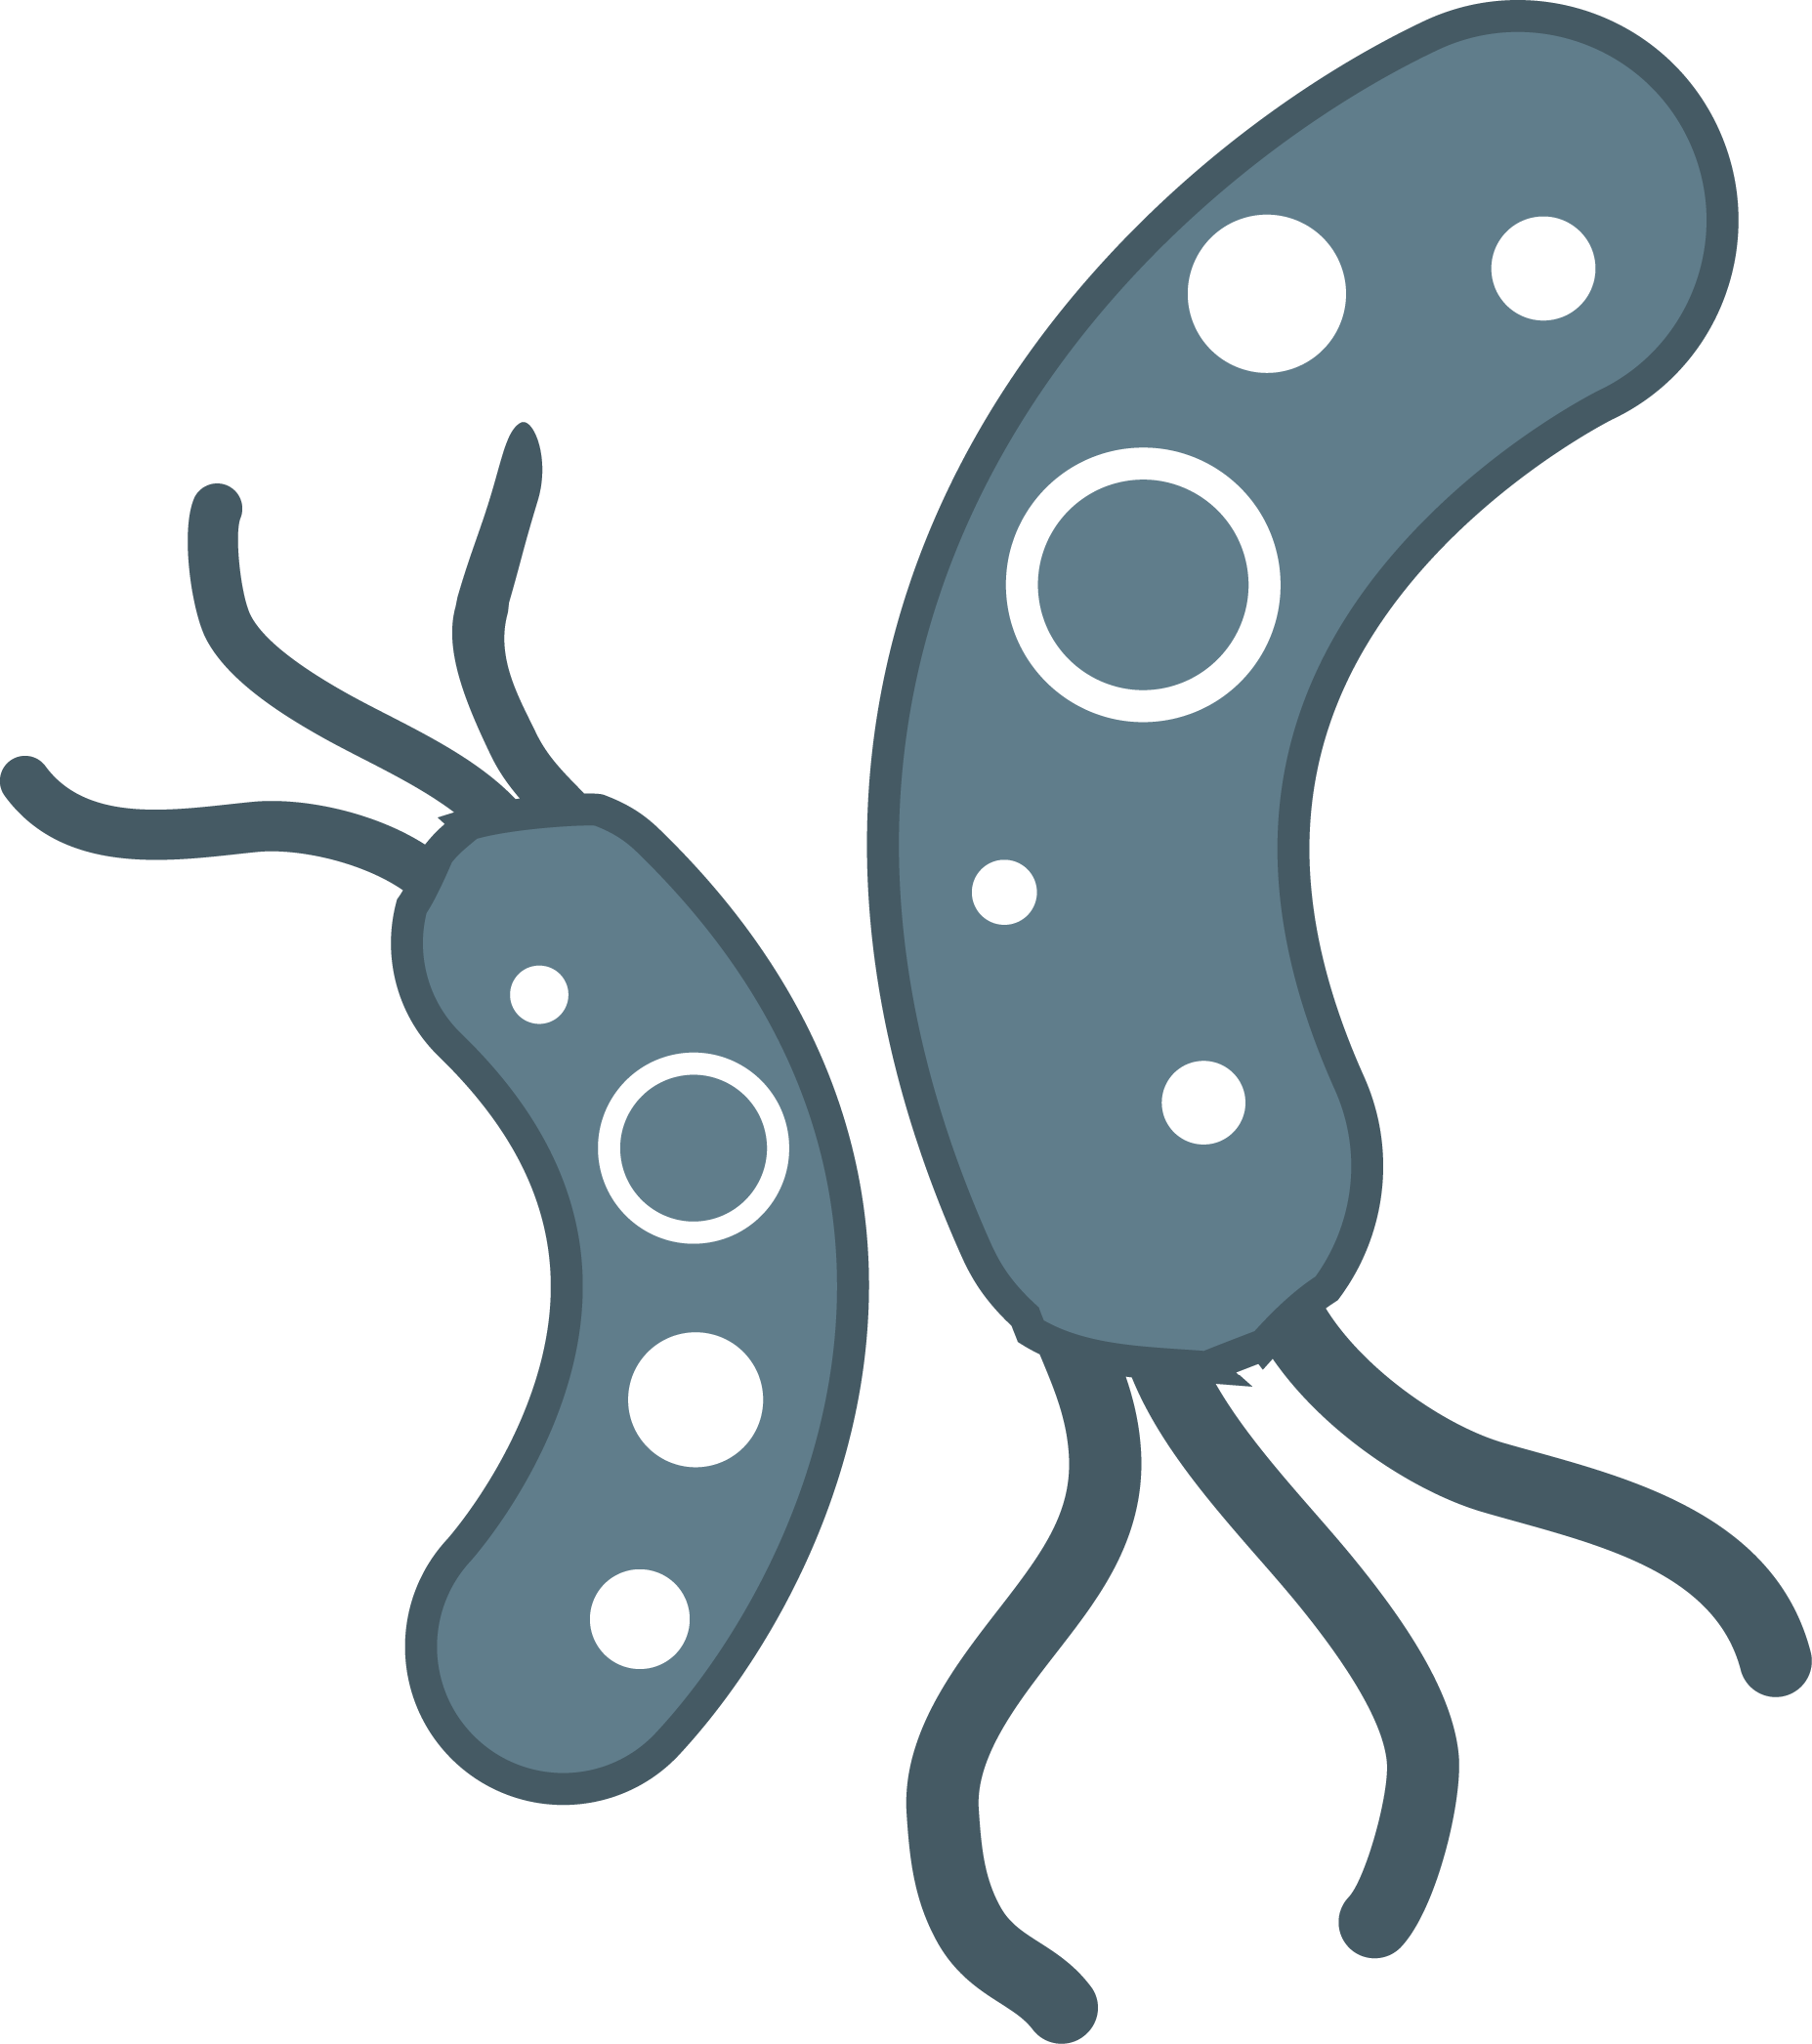 Bacteria Clipart at GetDrawings.com | Free for personal ...